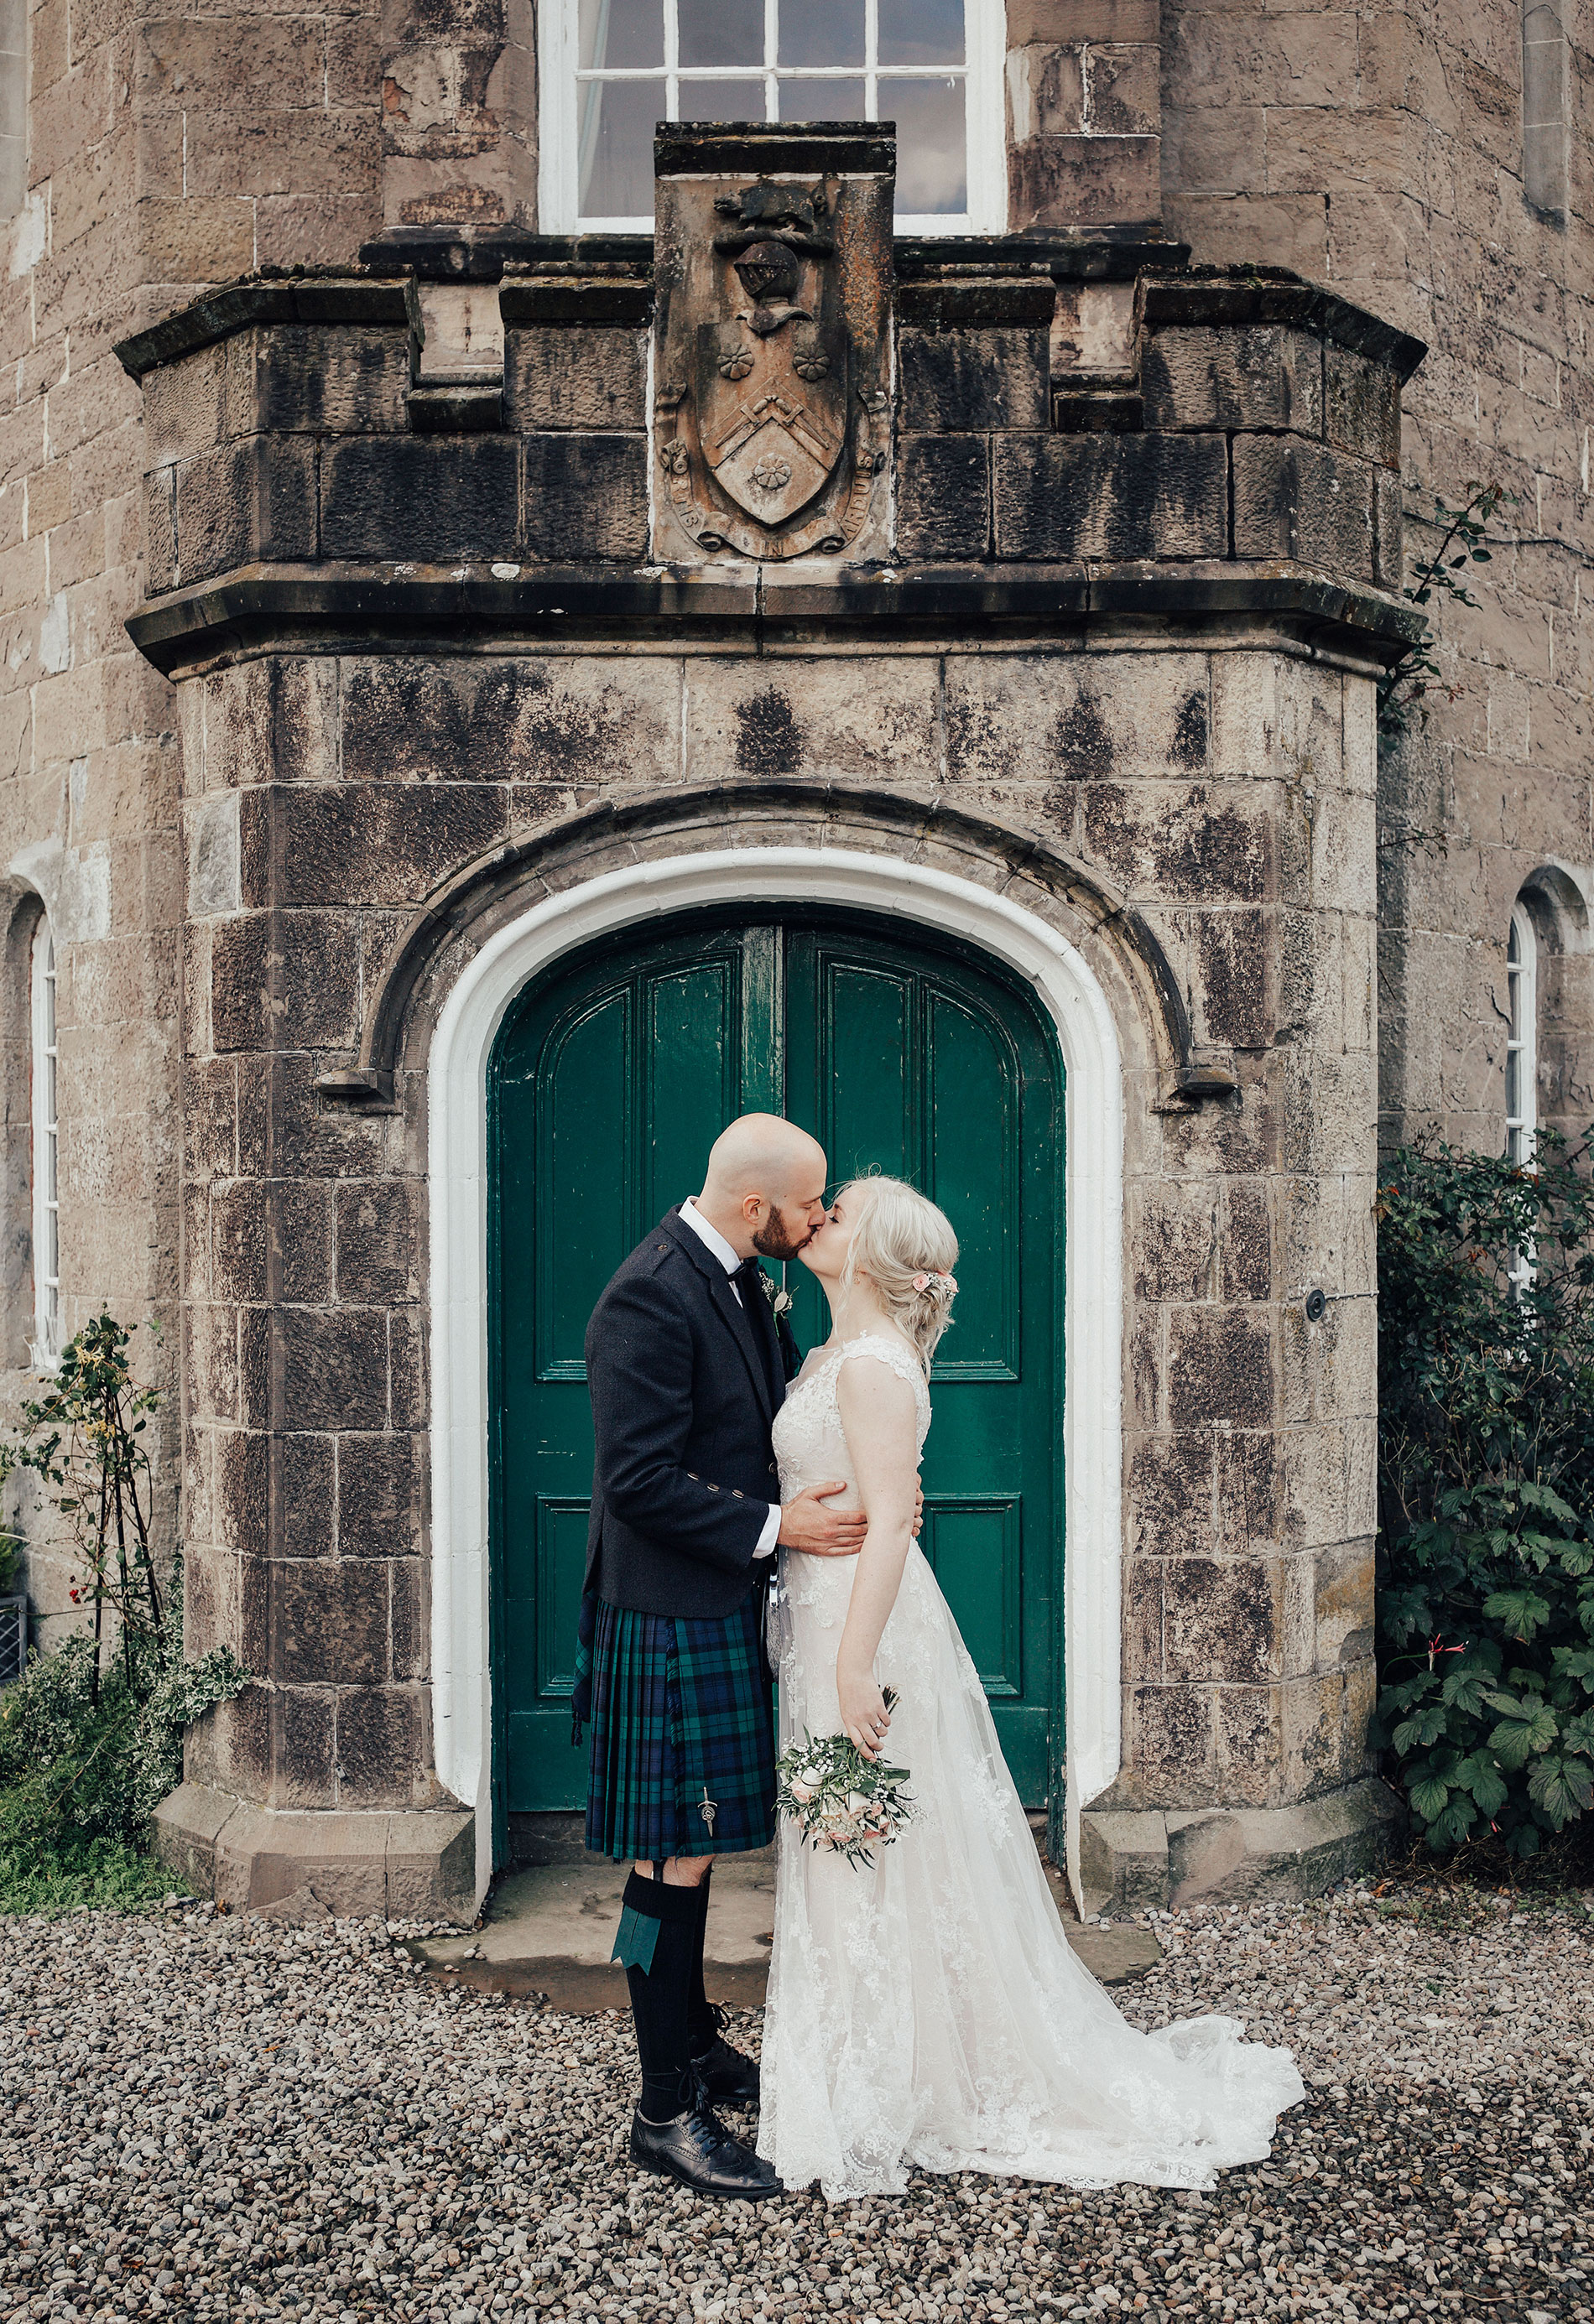 BOTURICH_CASTLE_WEDDING_PHOTOGRAPHER_PJ_PHILLIPS_PHOTOGRAPHY_104.jpg